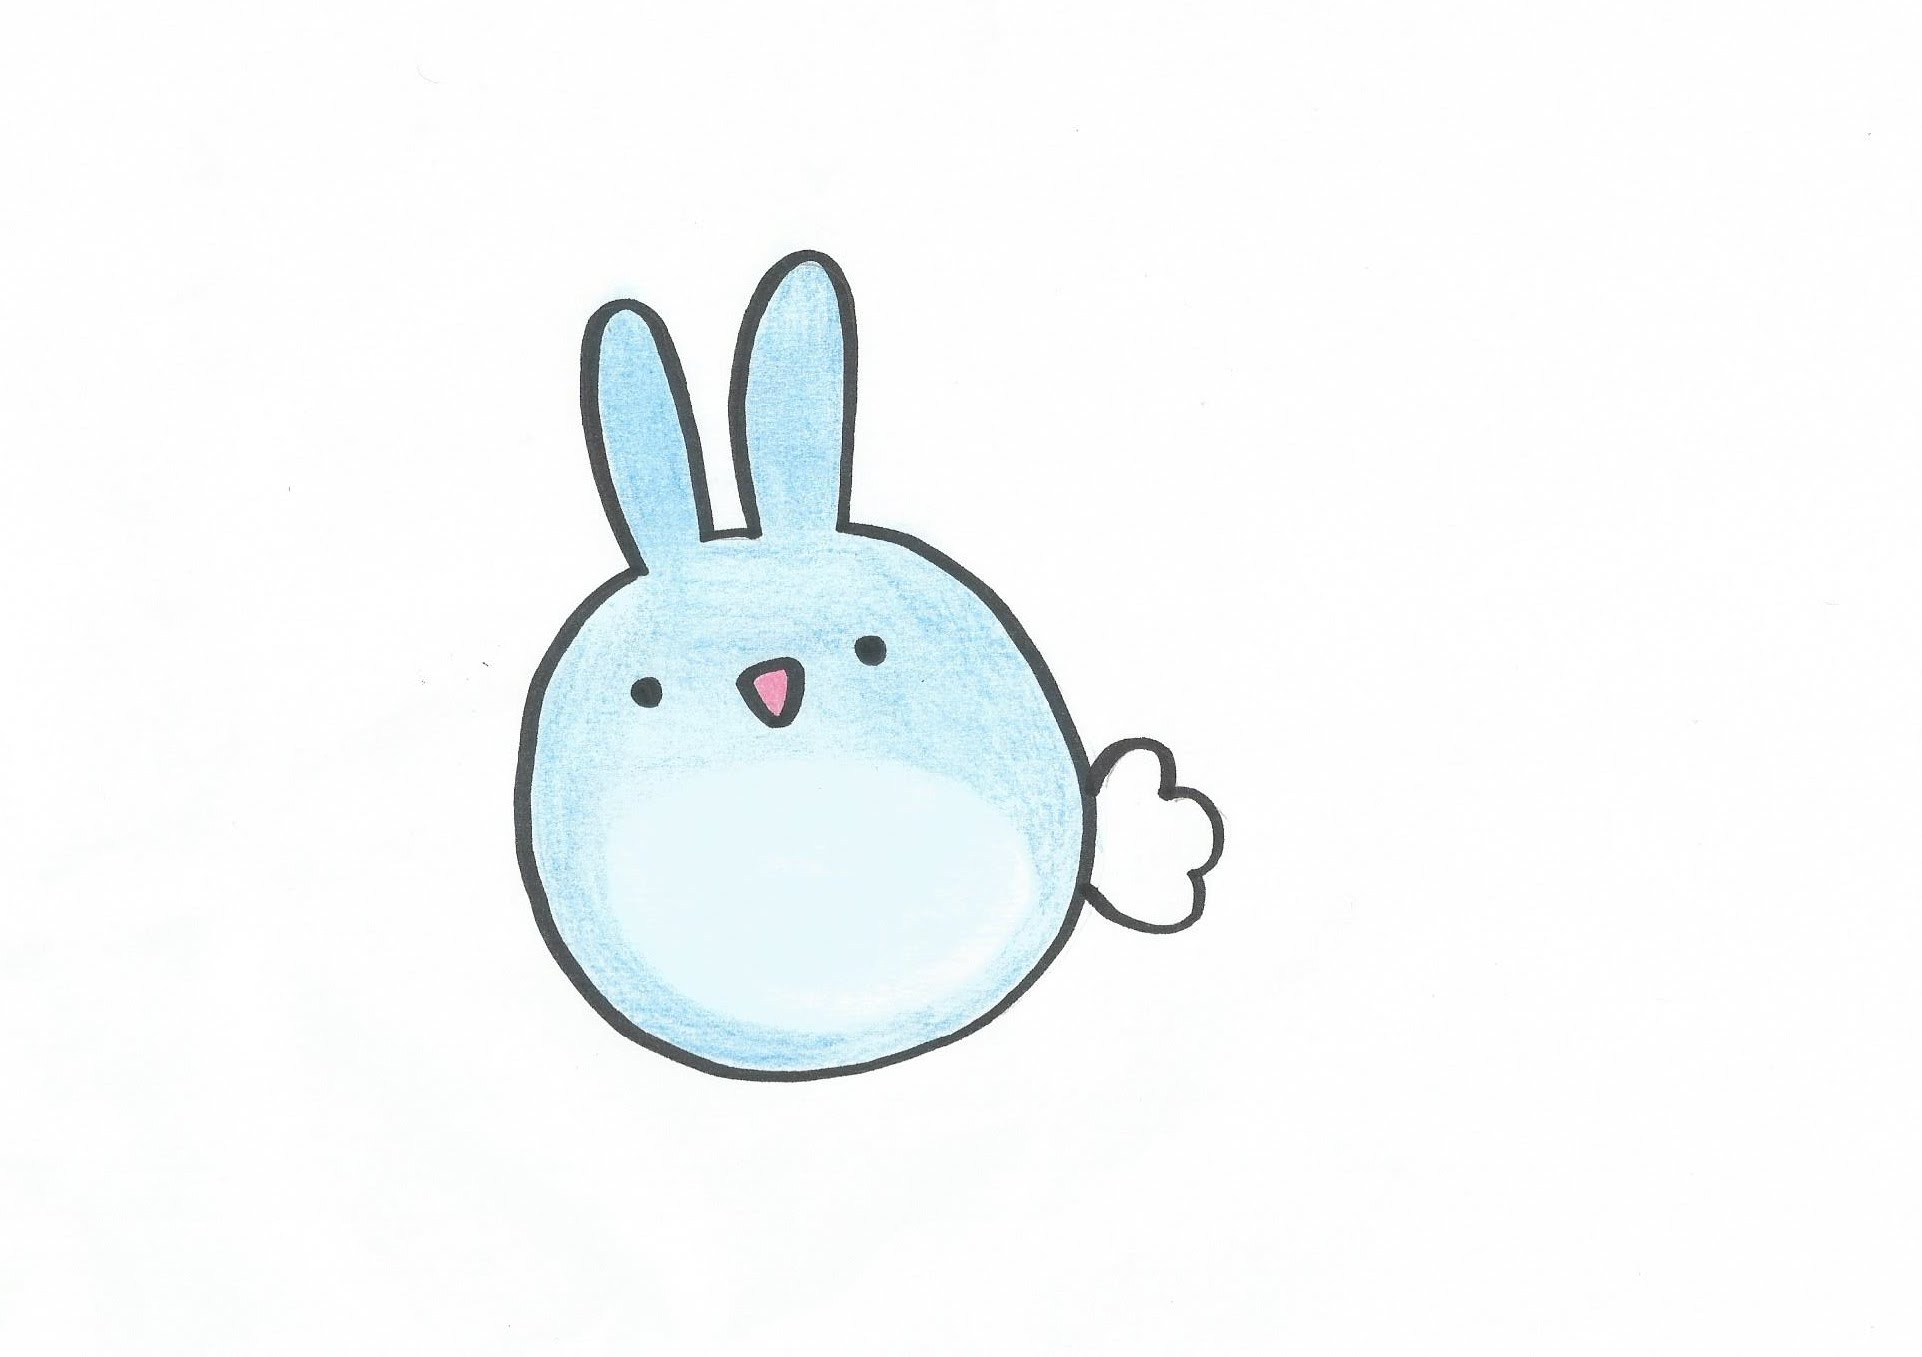 1922x1357 Bunny Sketch Cute Bunny Rabbit Drawing How To Draw A Cute Bunny